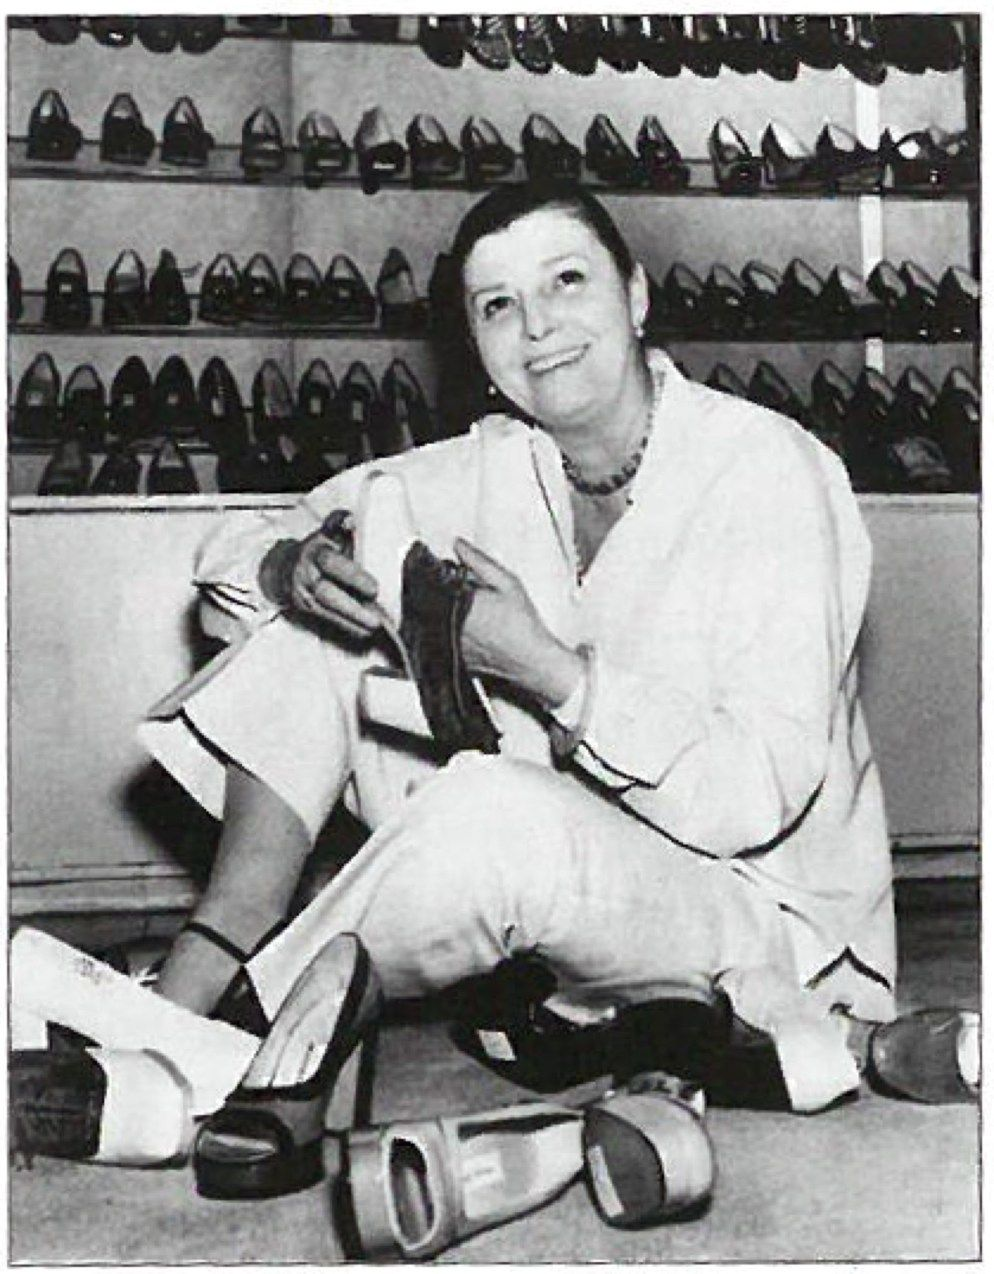 Jackie Kennedy Shoes: FASHION FLASHBACK: BETH LEVINE SHOES PART 2 In 2020